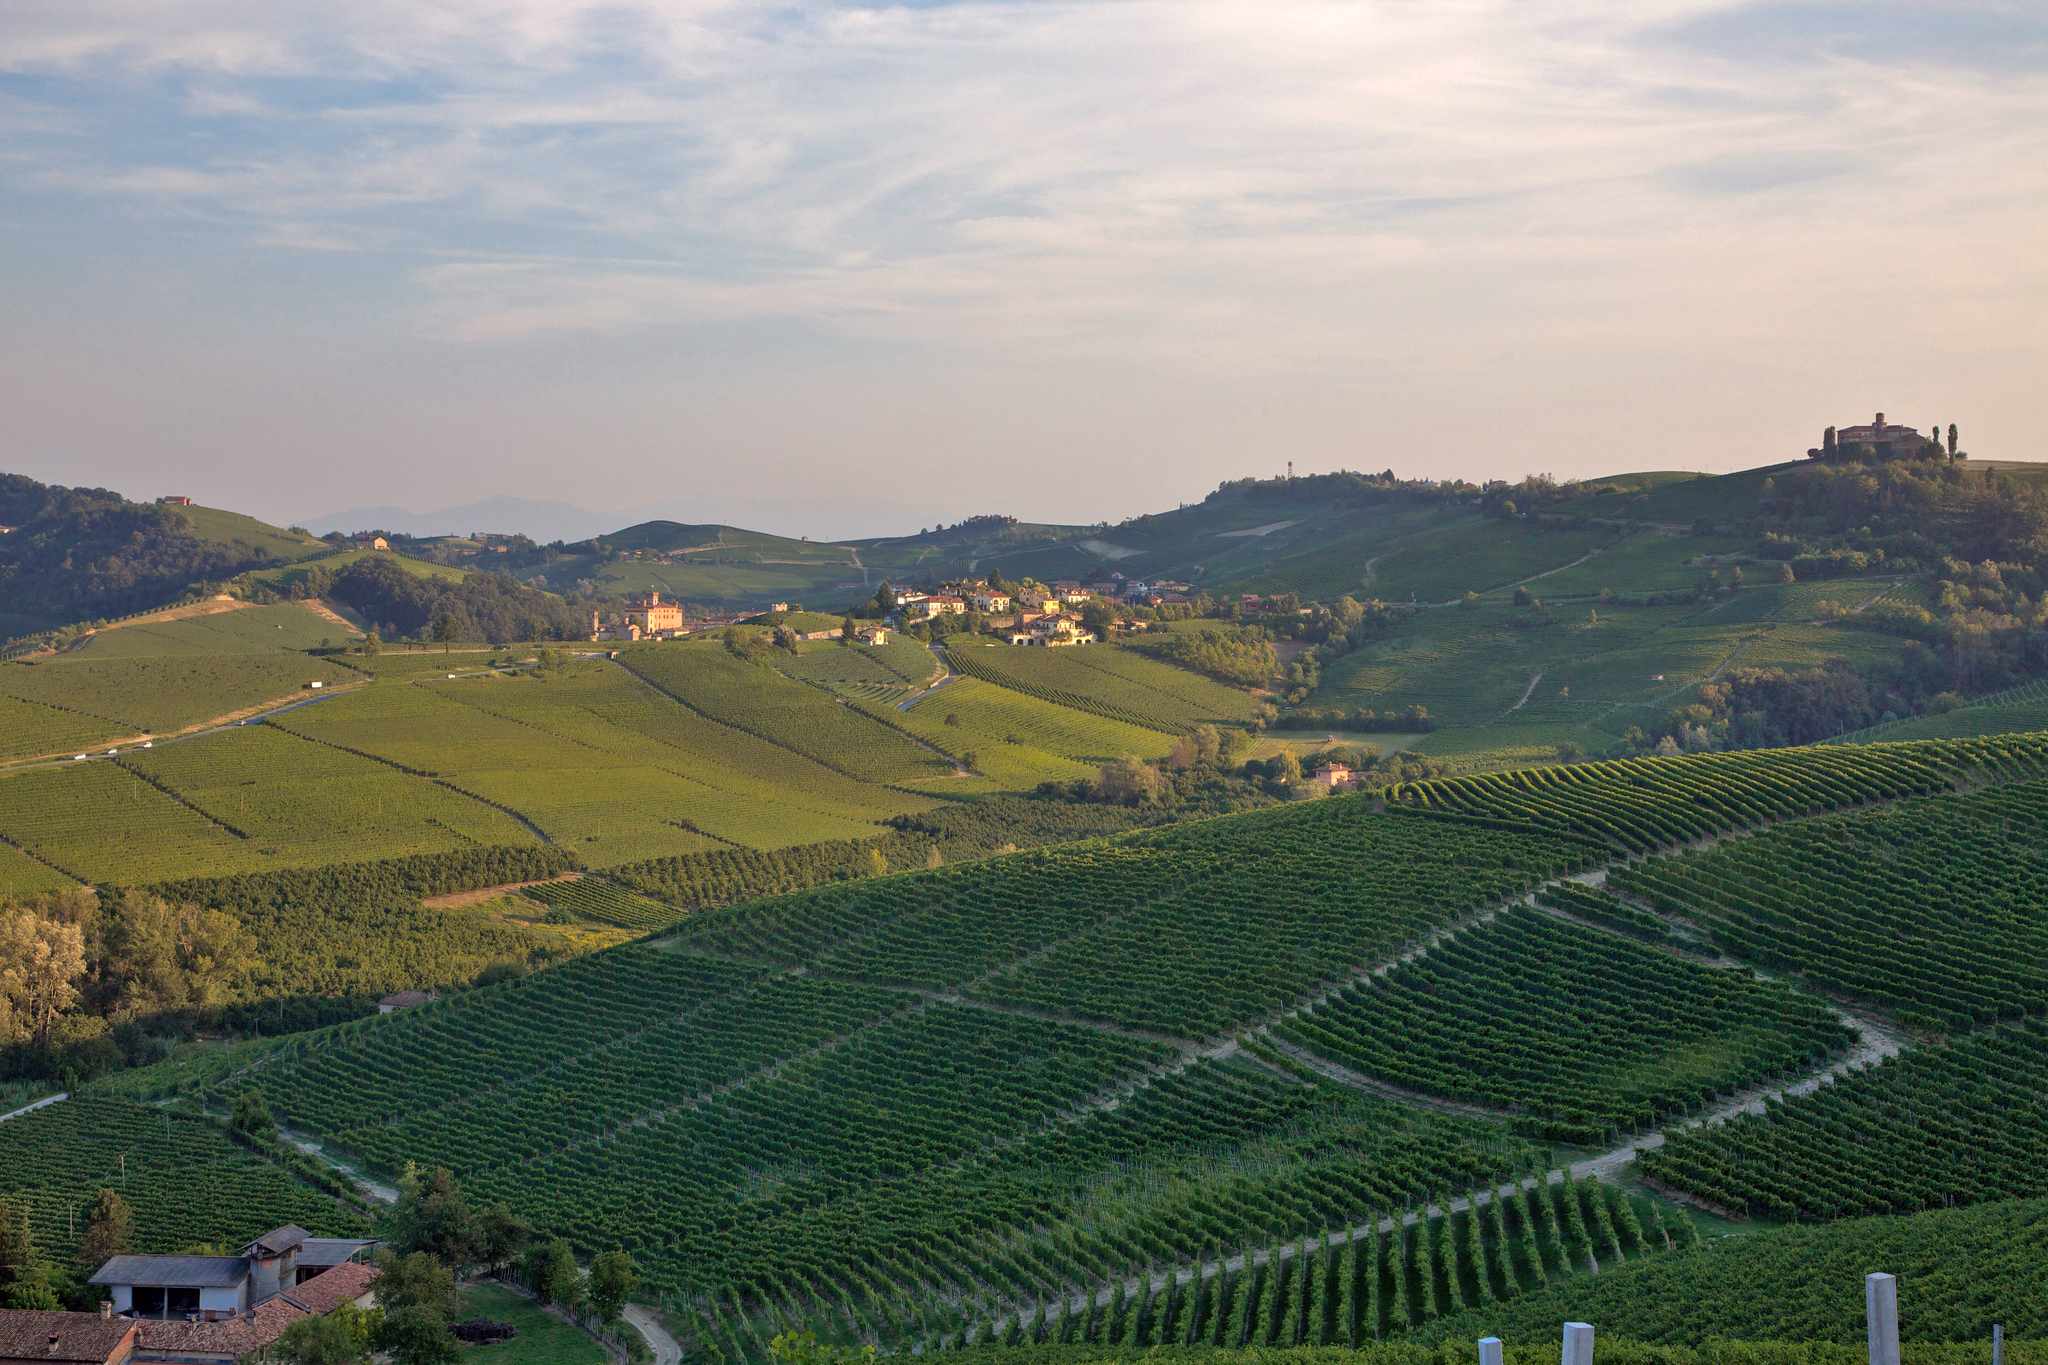 Barolo piedmont vineyards